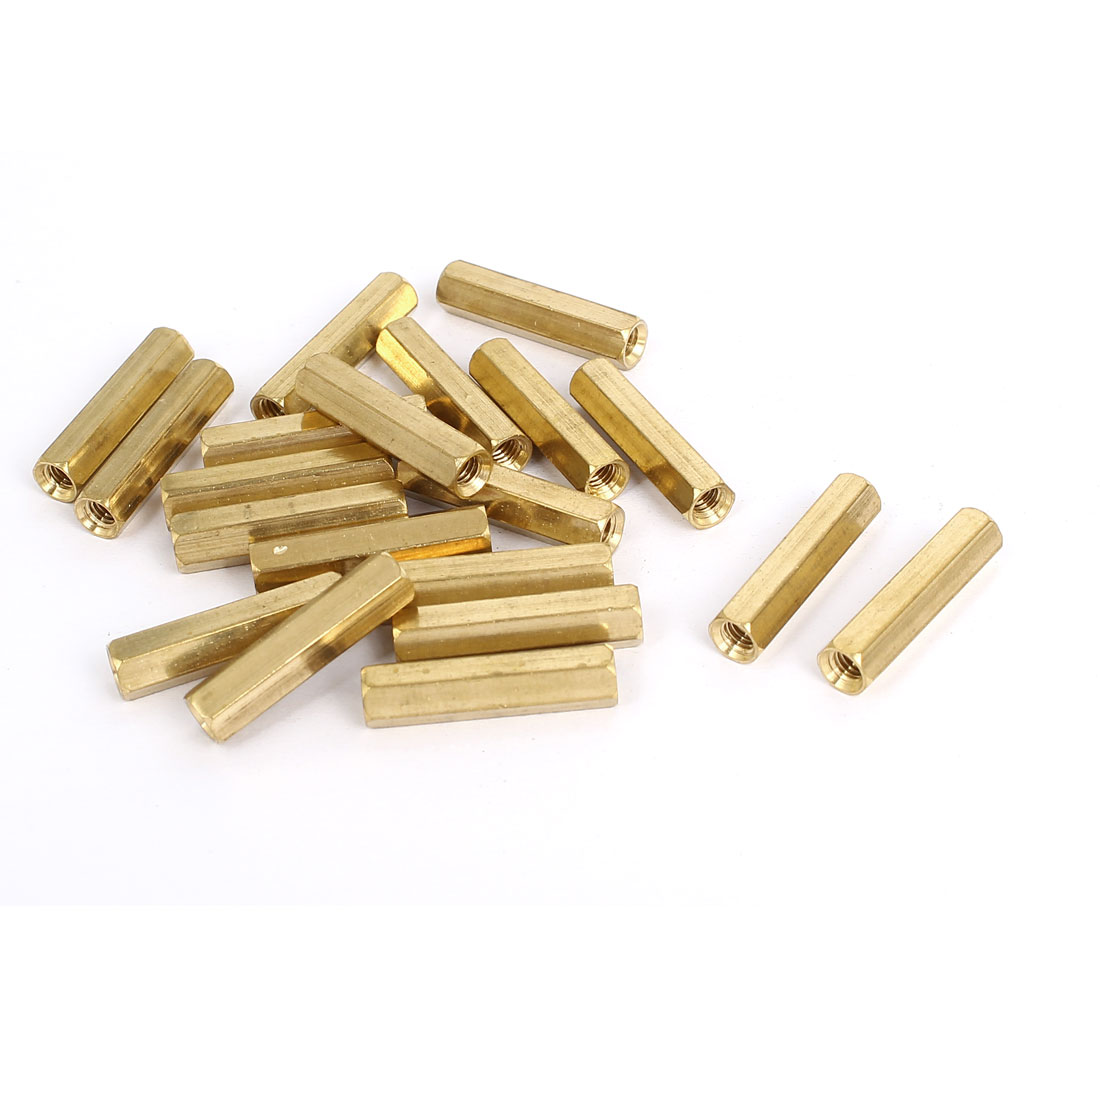 M4x25mm Brass Hex Hexagonal Female Thread PCB Standoff Spacer 20pcs